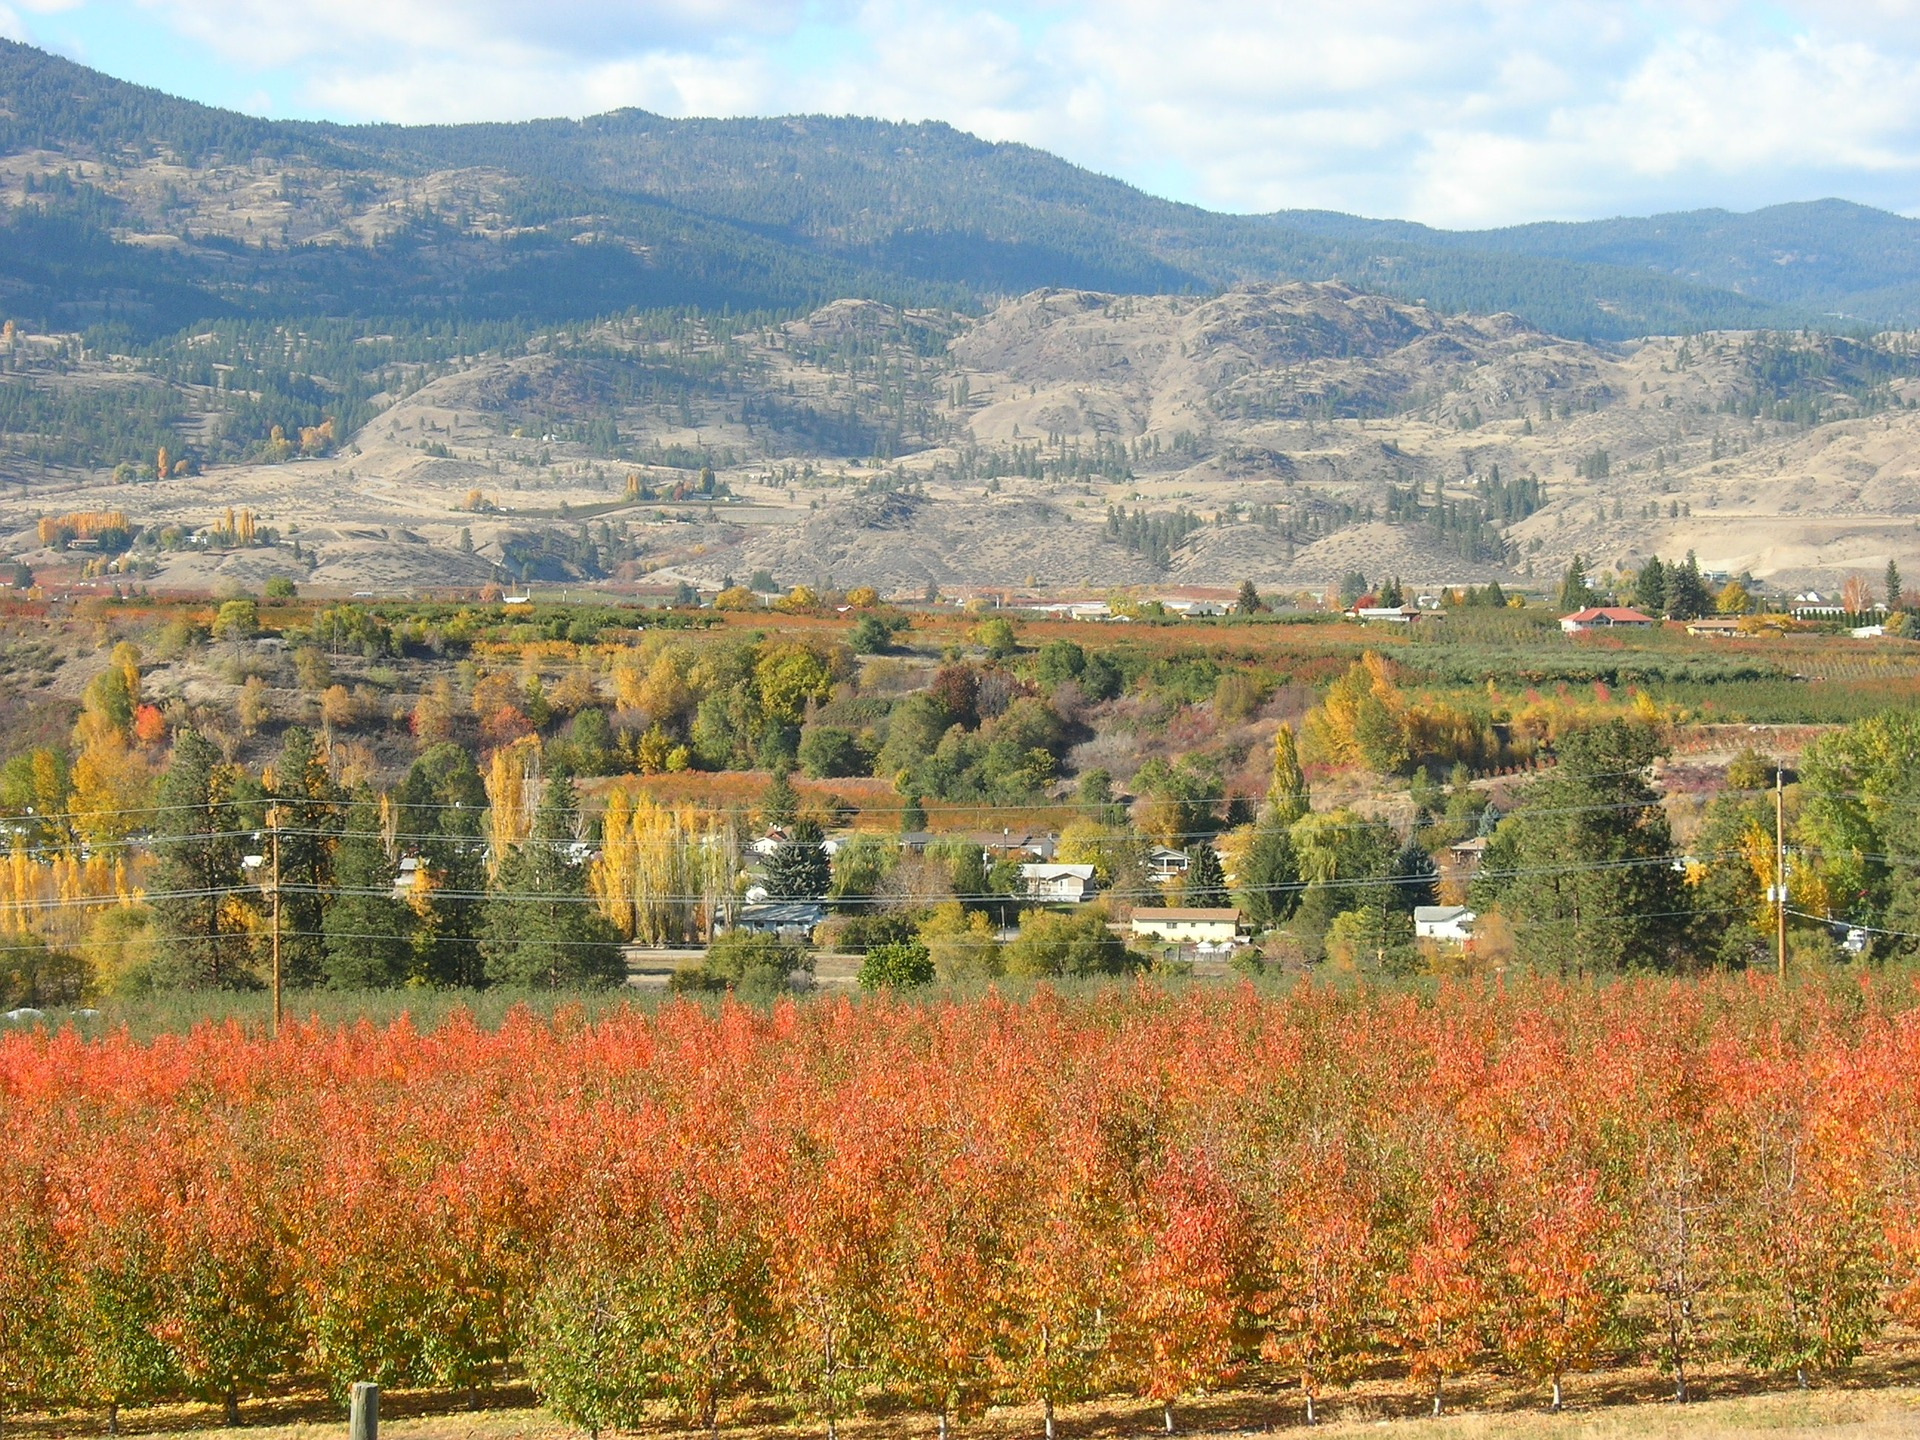 Okanagan wine vineyard